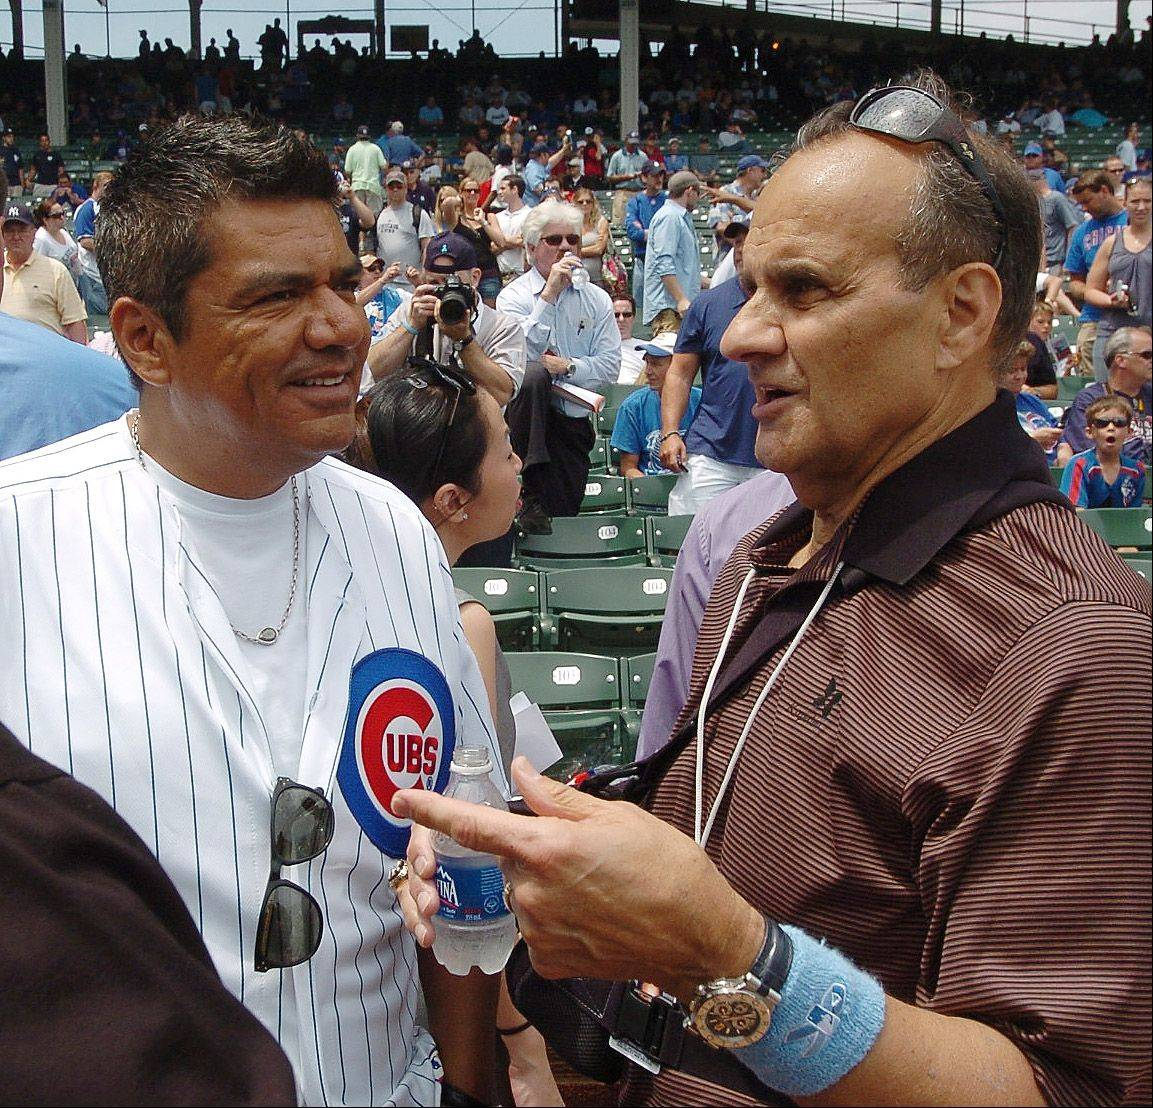 Joe Torre chats with George Lopez, who threw out the first pitch at Wrigley Field.